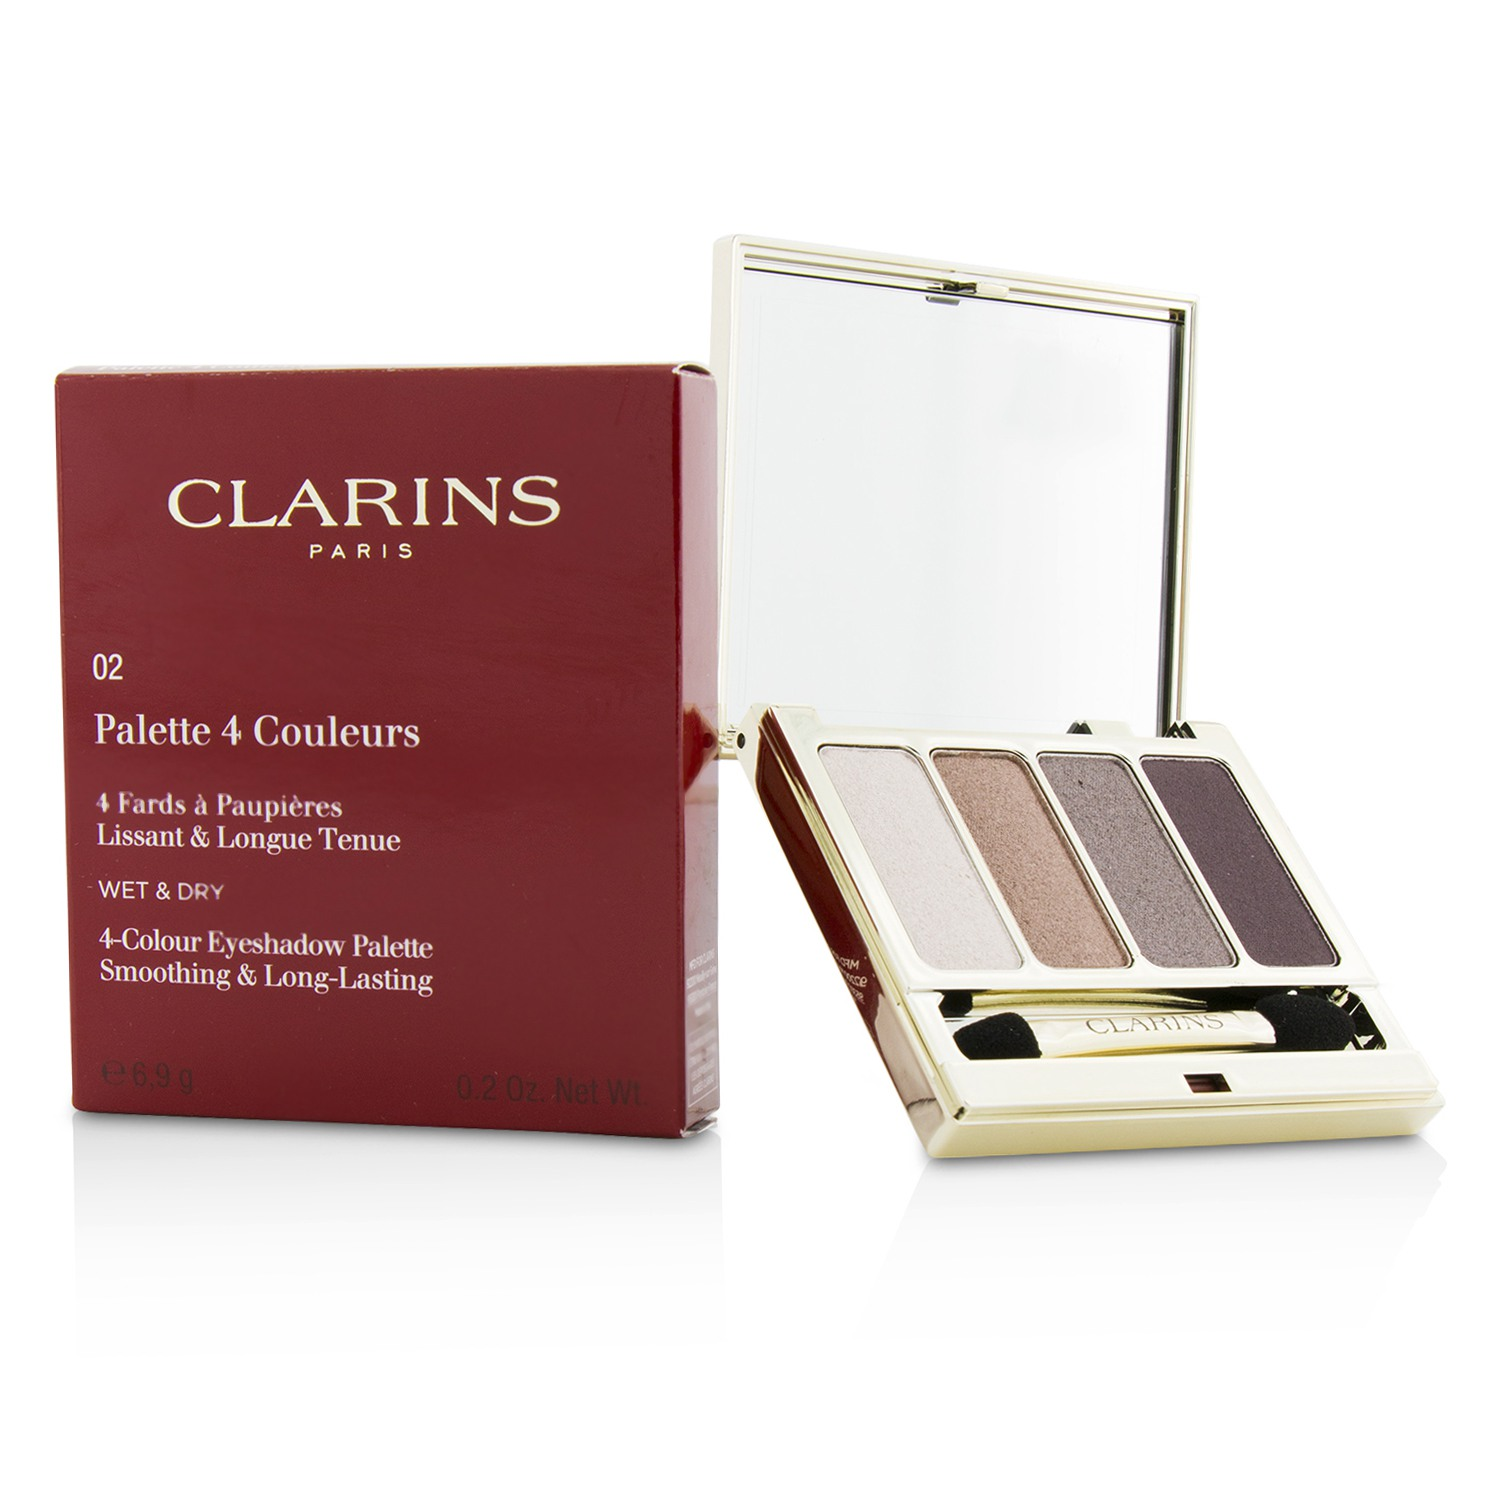 4 Colour Eyeshadow Palette (Smoothing & Long Lasting) - #02 Rosewood Clarins Image